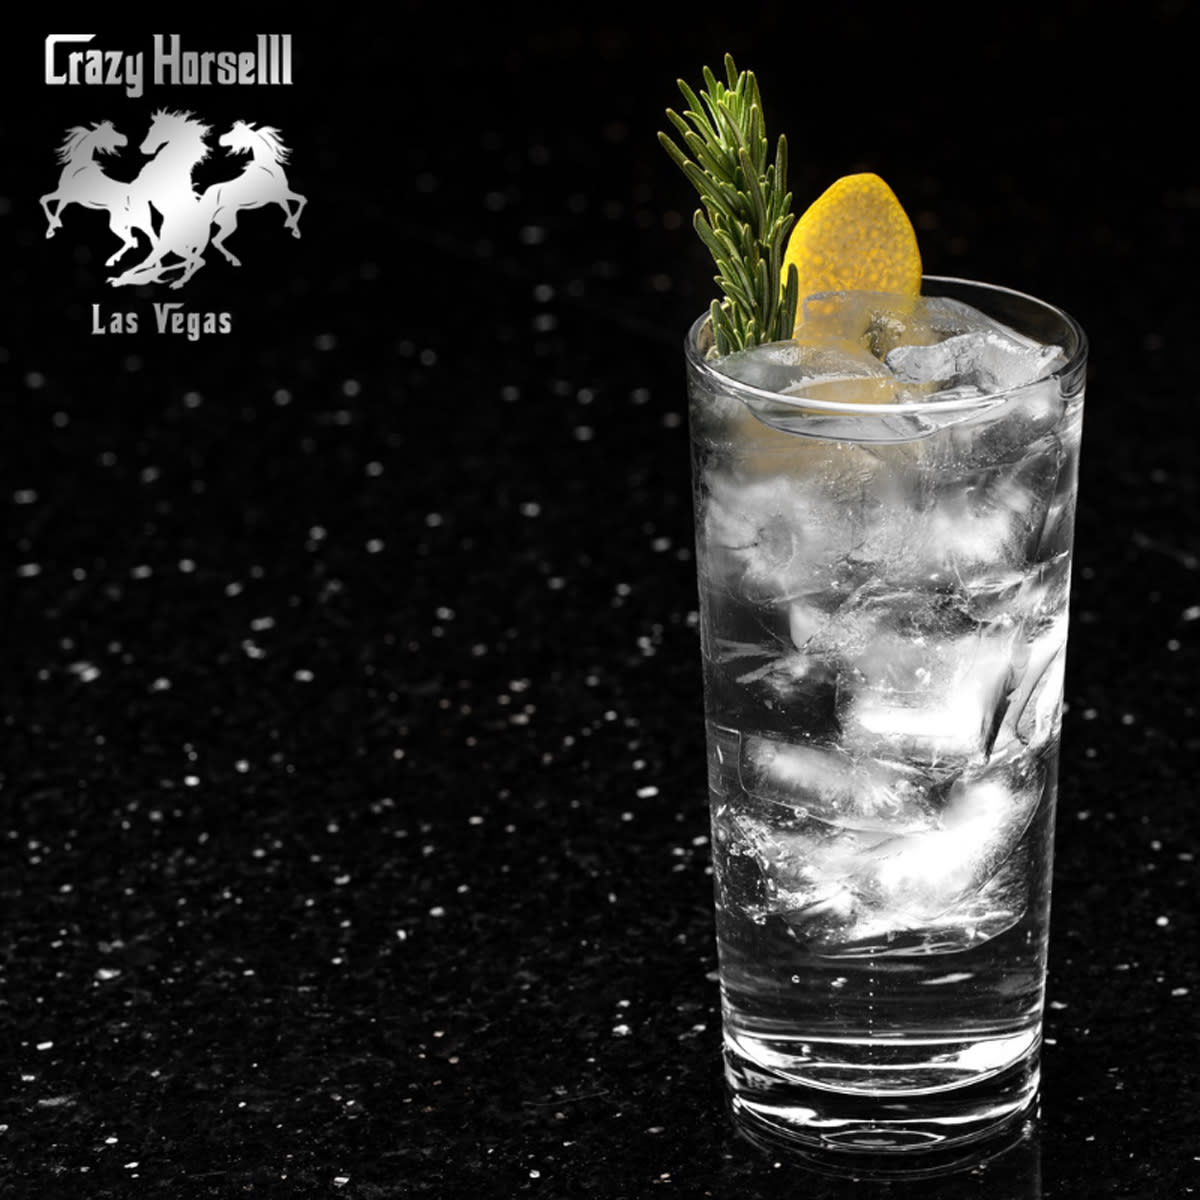 The Italian Gin & Tonic craft cocktail